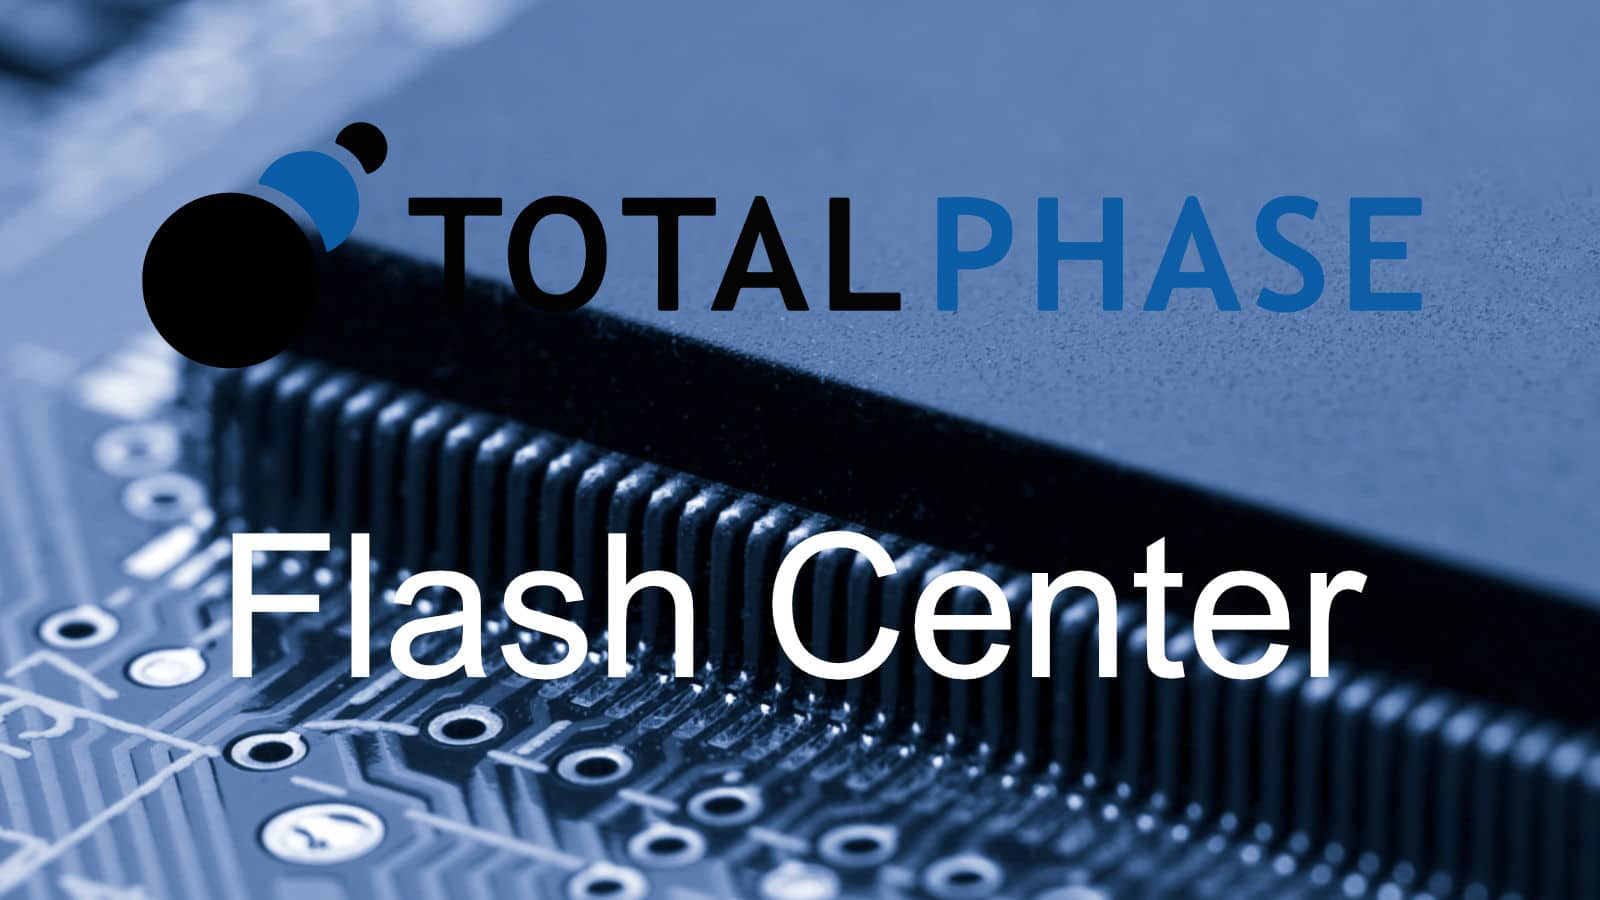 Total Phase Flash Center